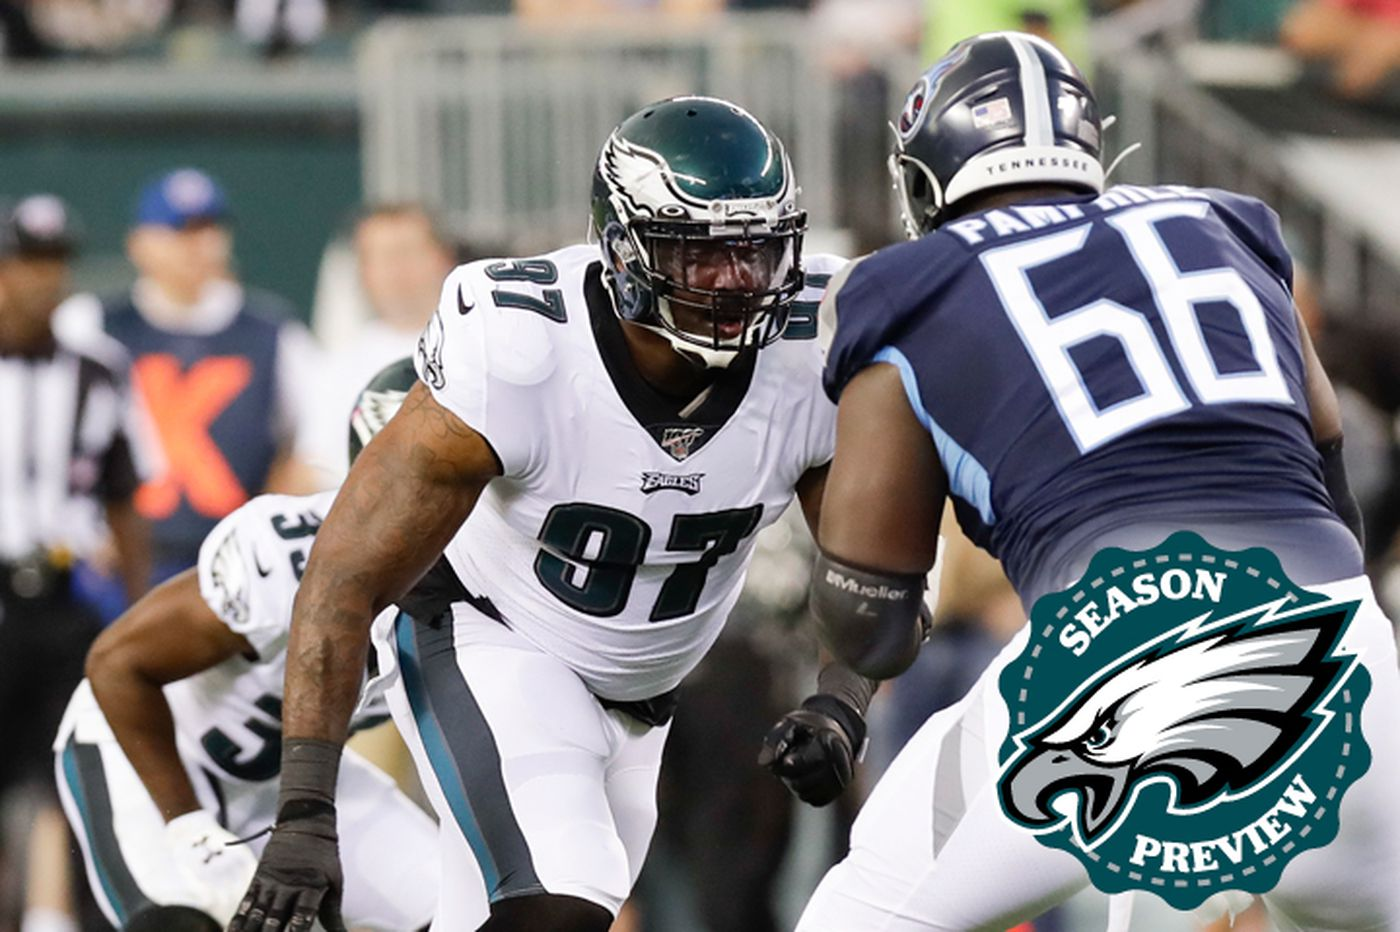 NFC preview: How the Eagles stack up against the rest of the conference